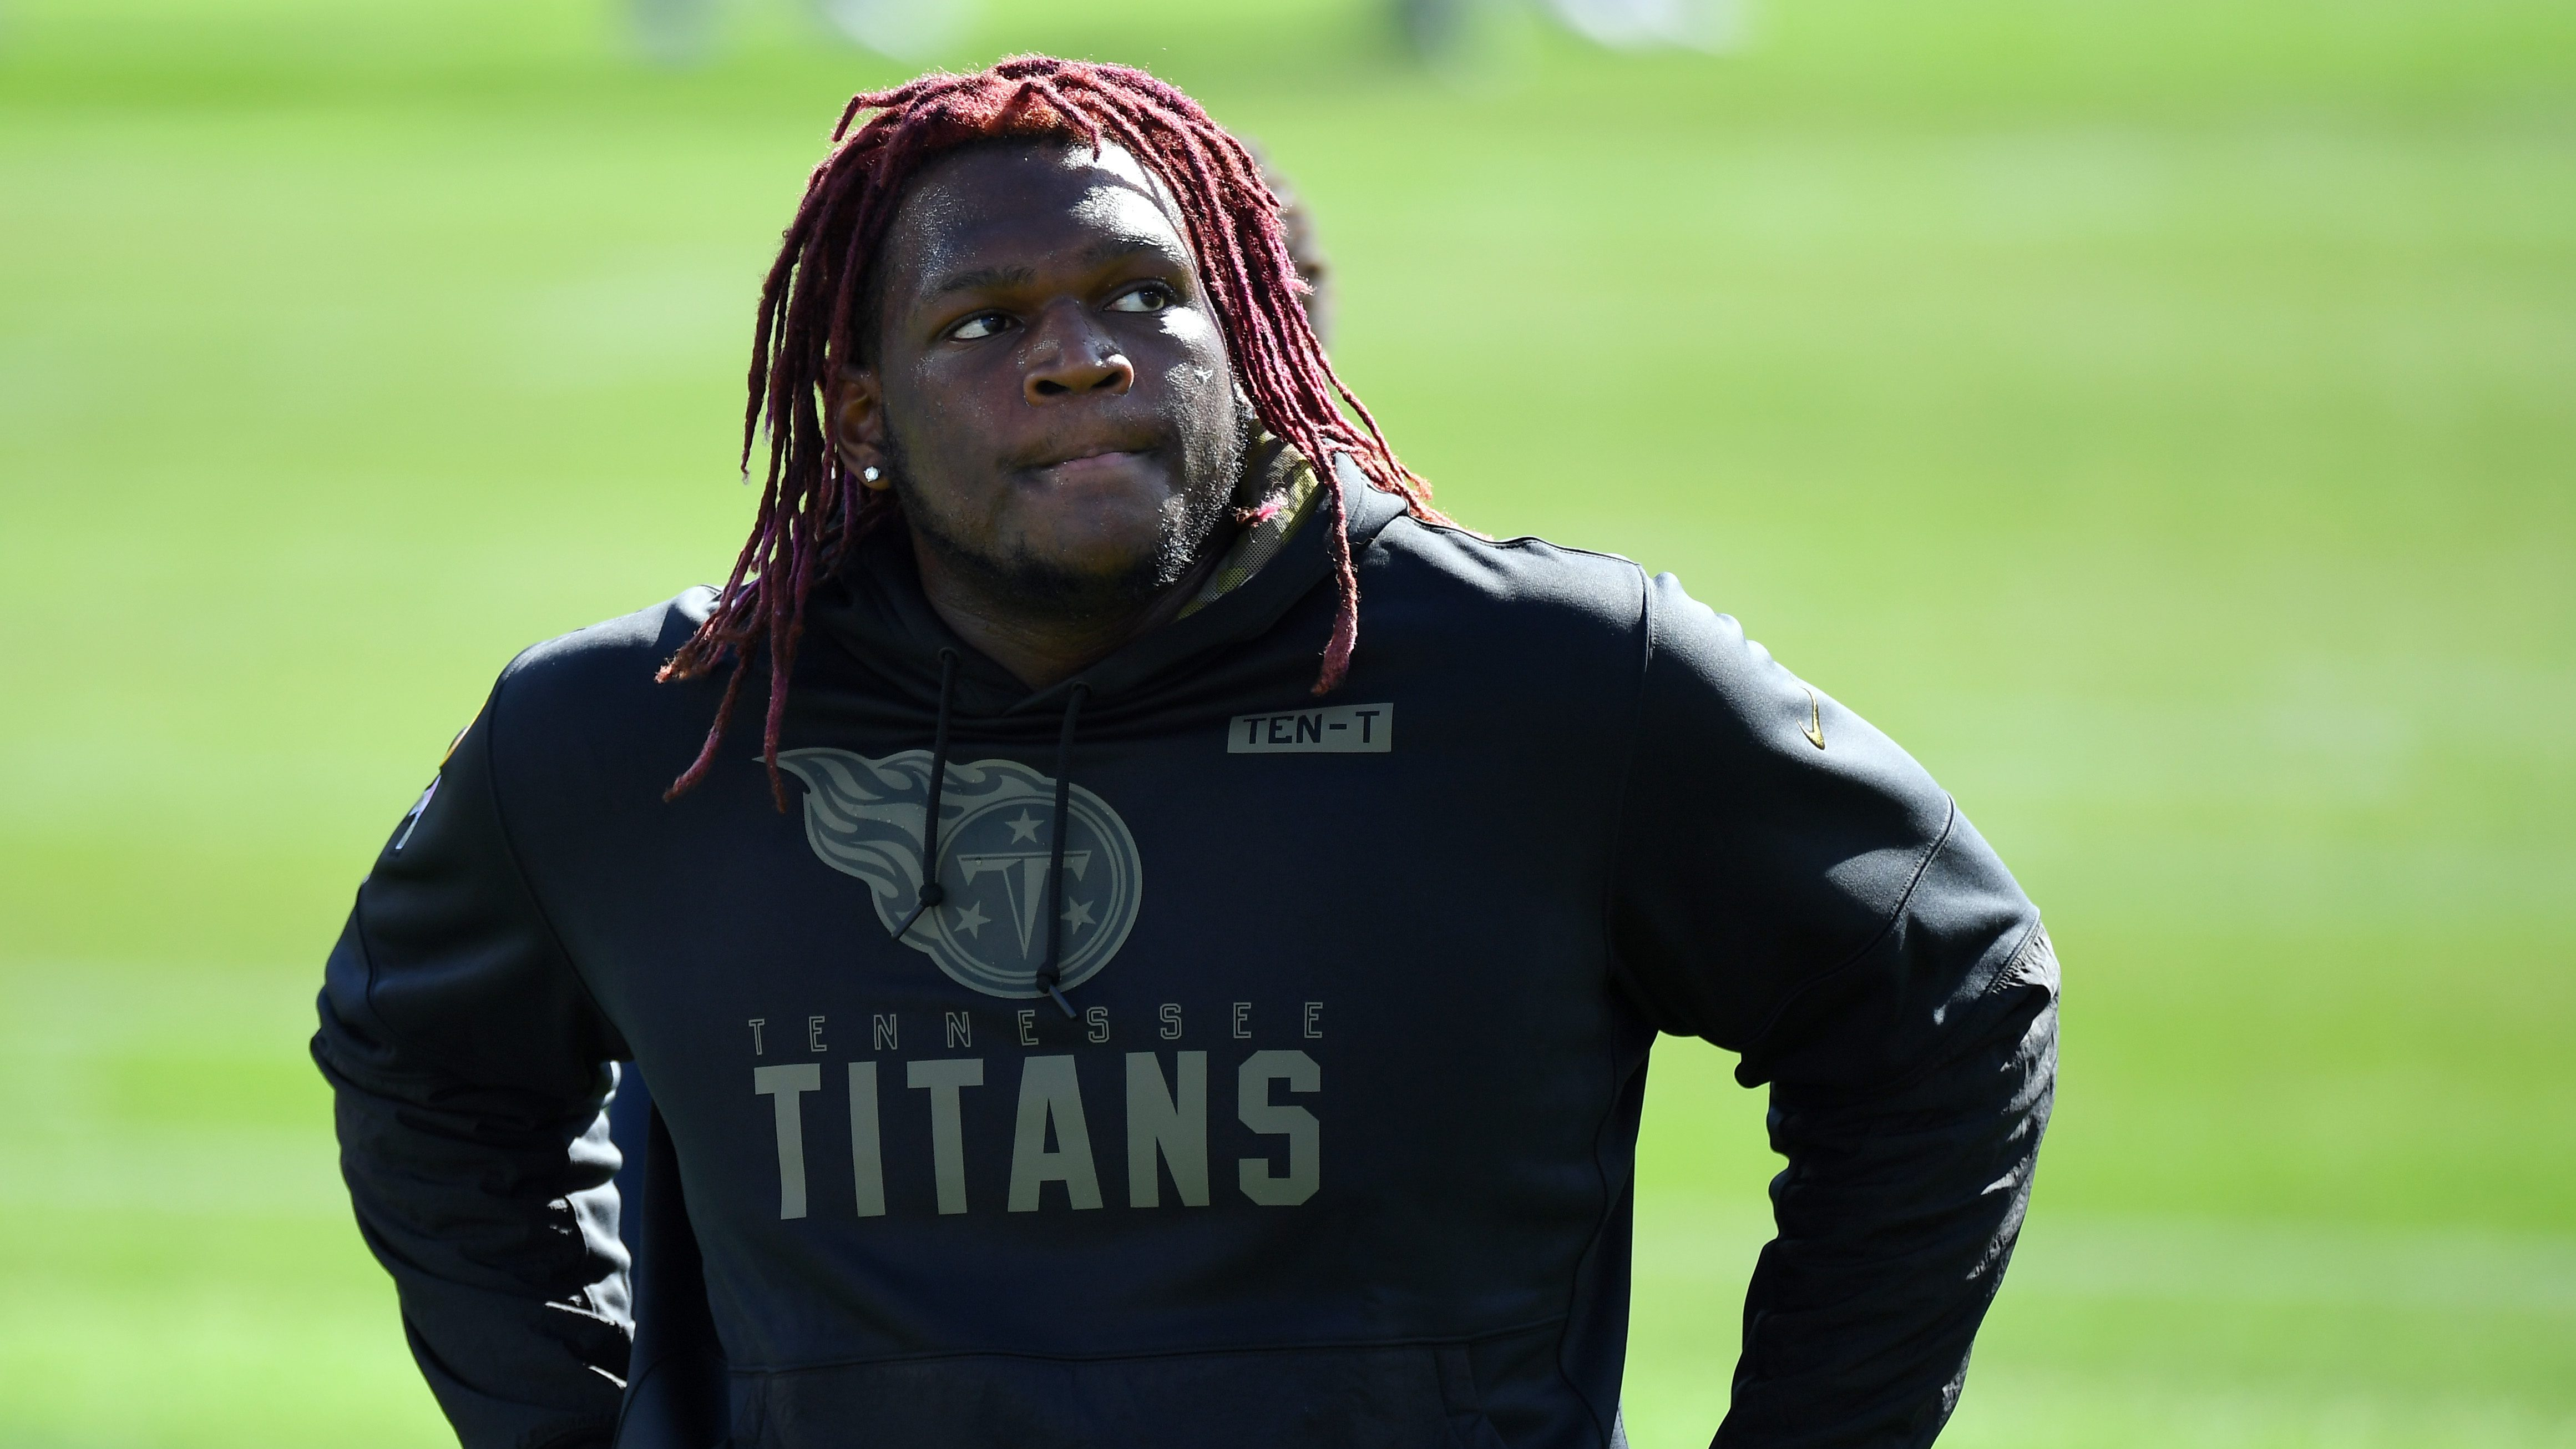 Report: Titans shopping Isaiah Wilson, open to trading him